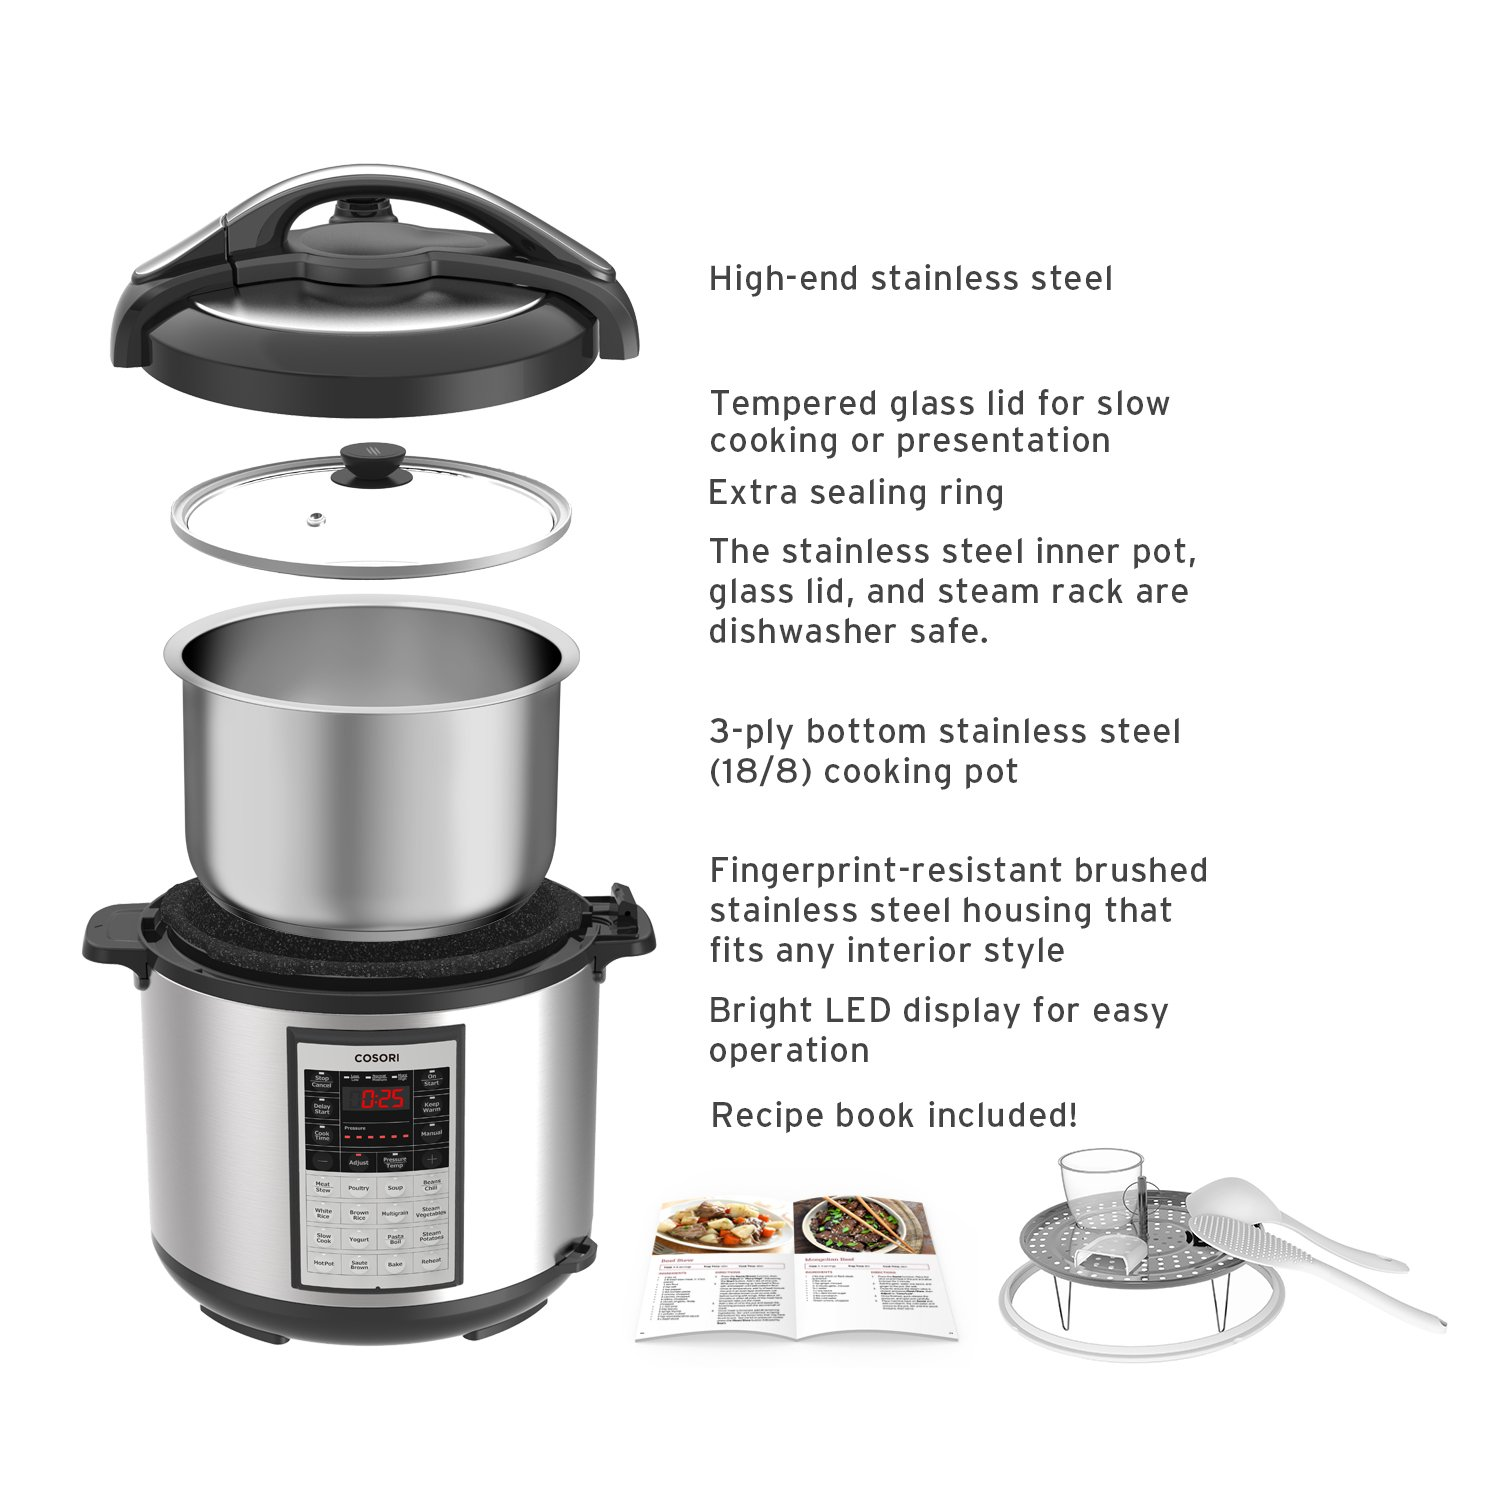 COSORI 8 Quart 8-in-1 Multi-Functional Programmable Pressure Cooker, Slow Cooker, Rice Cooker, Steamer, Sauté, Yogurt Maker, Hot Pot and Warmer, Full Accessories Included, Stainless Steel by COSORI (Image #4)